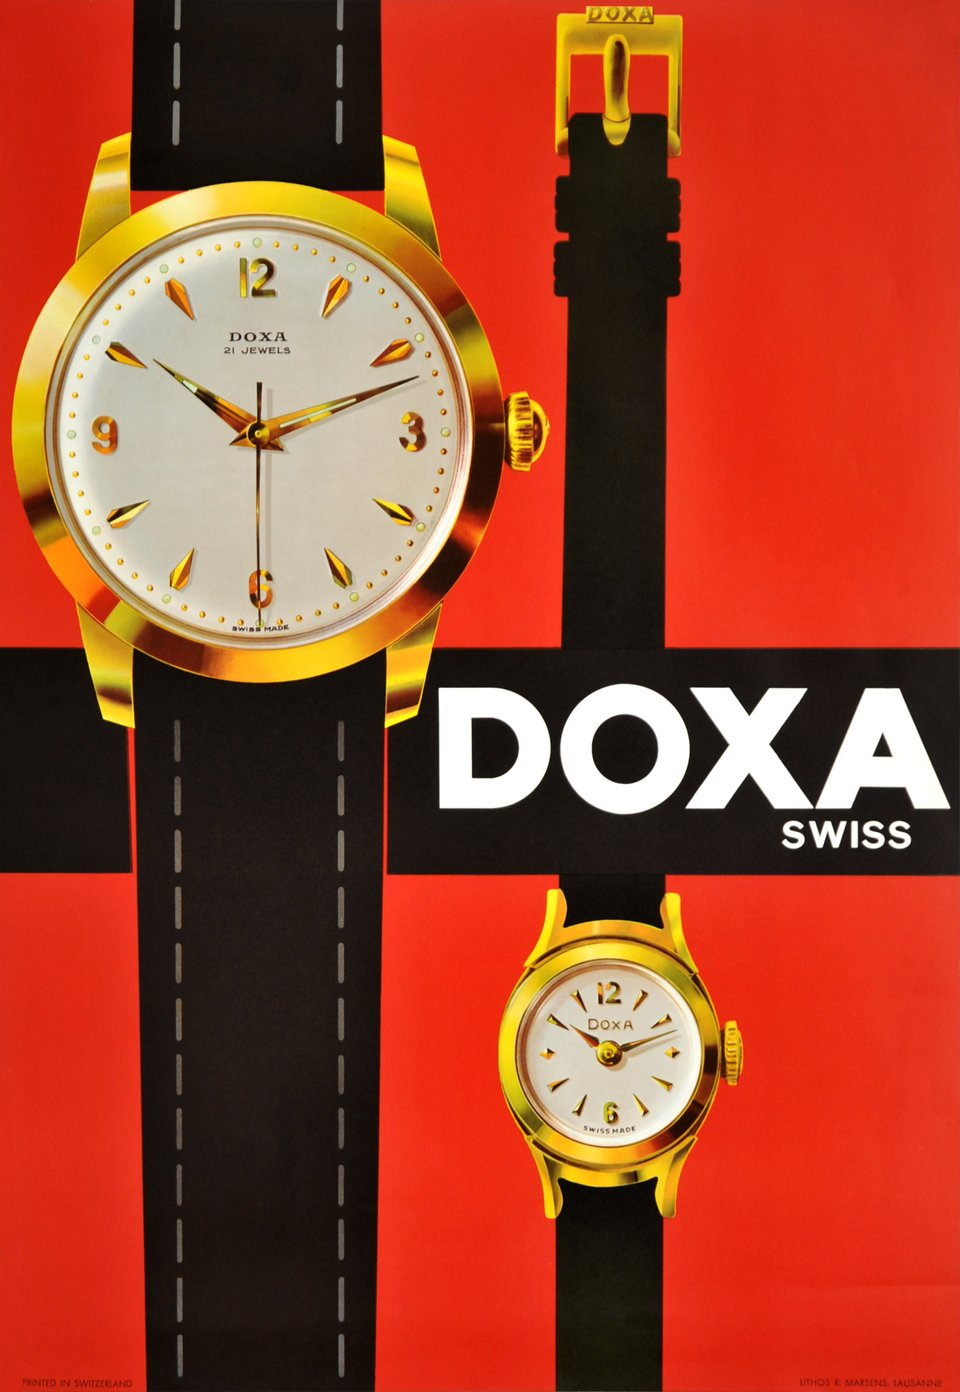 Doxa Suisse, 21 Jewels – Vintage poster – ANONYME – 1960